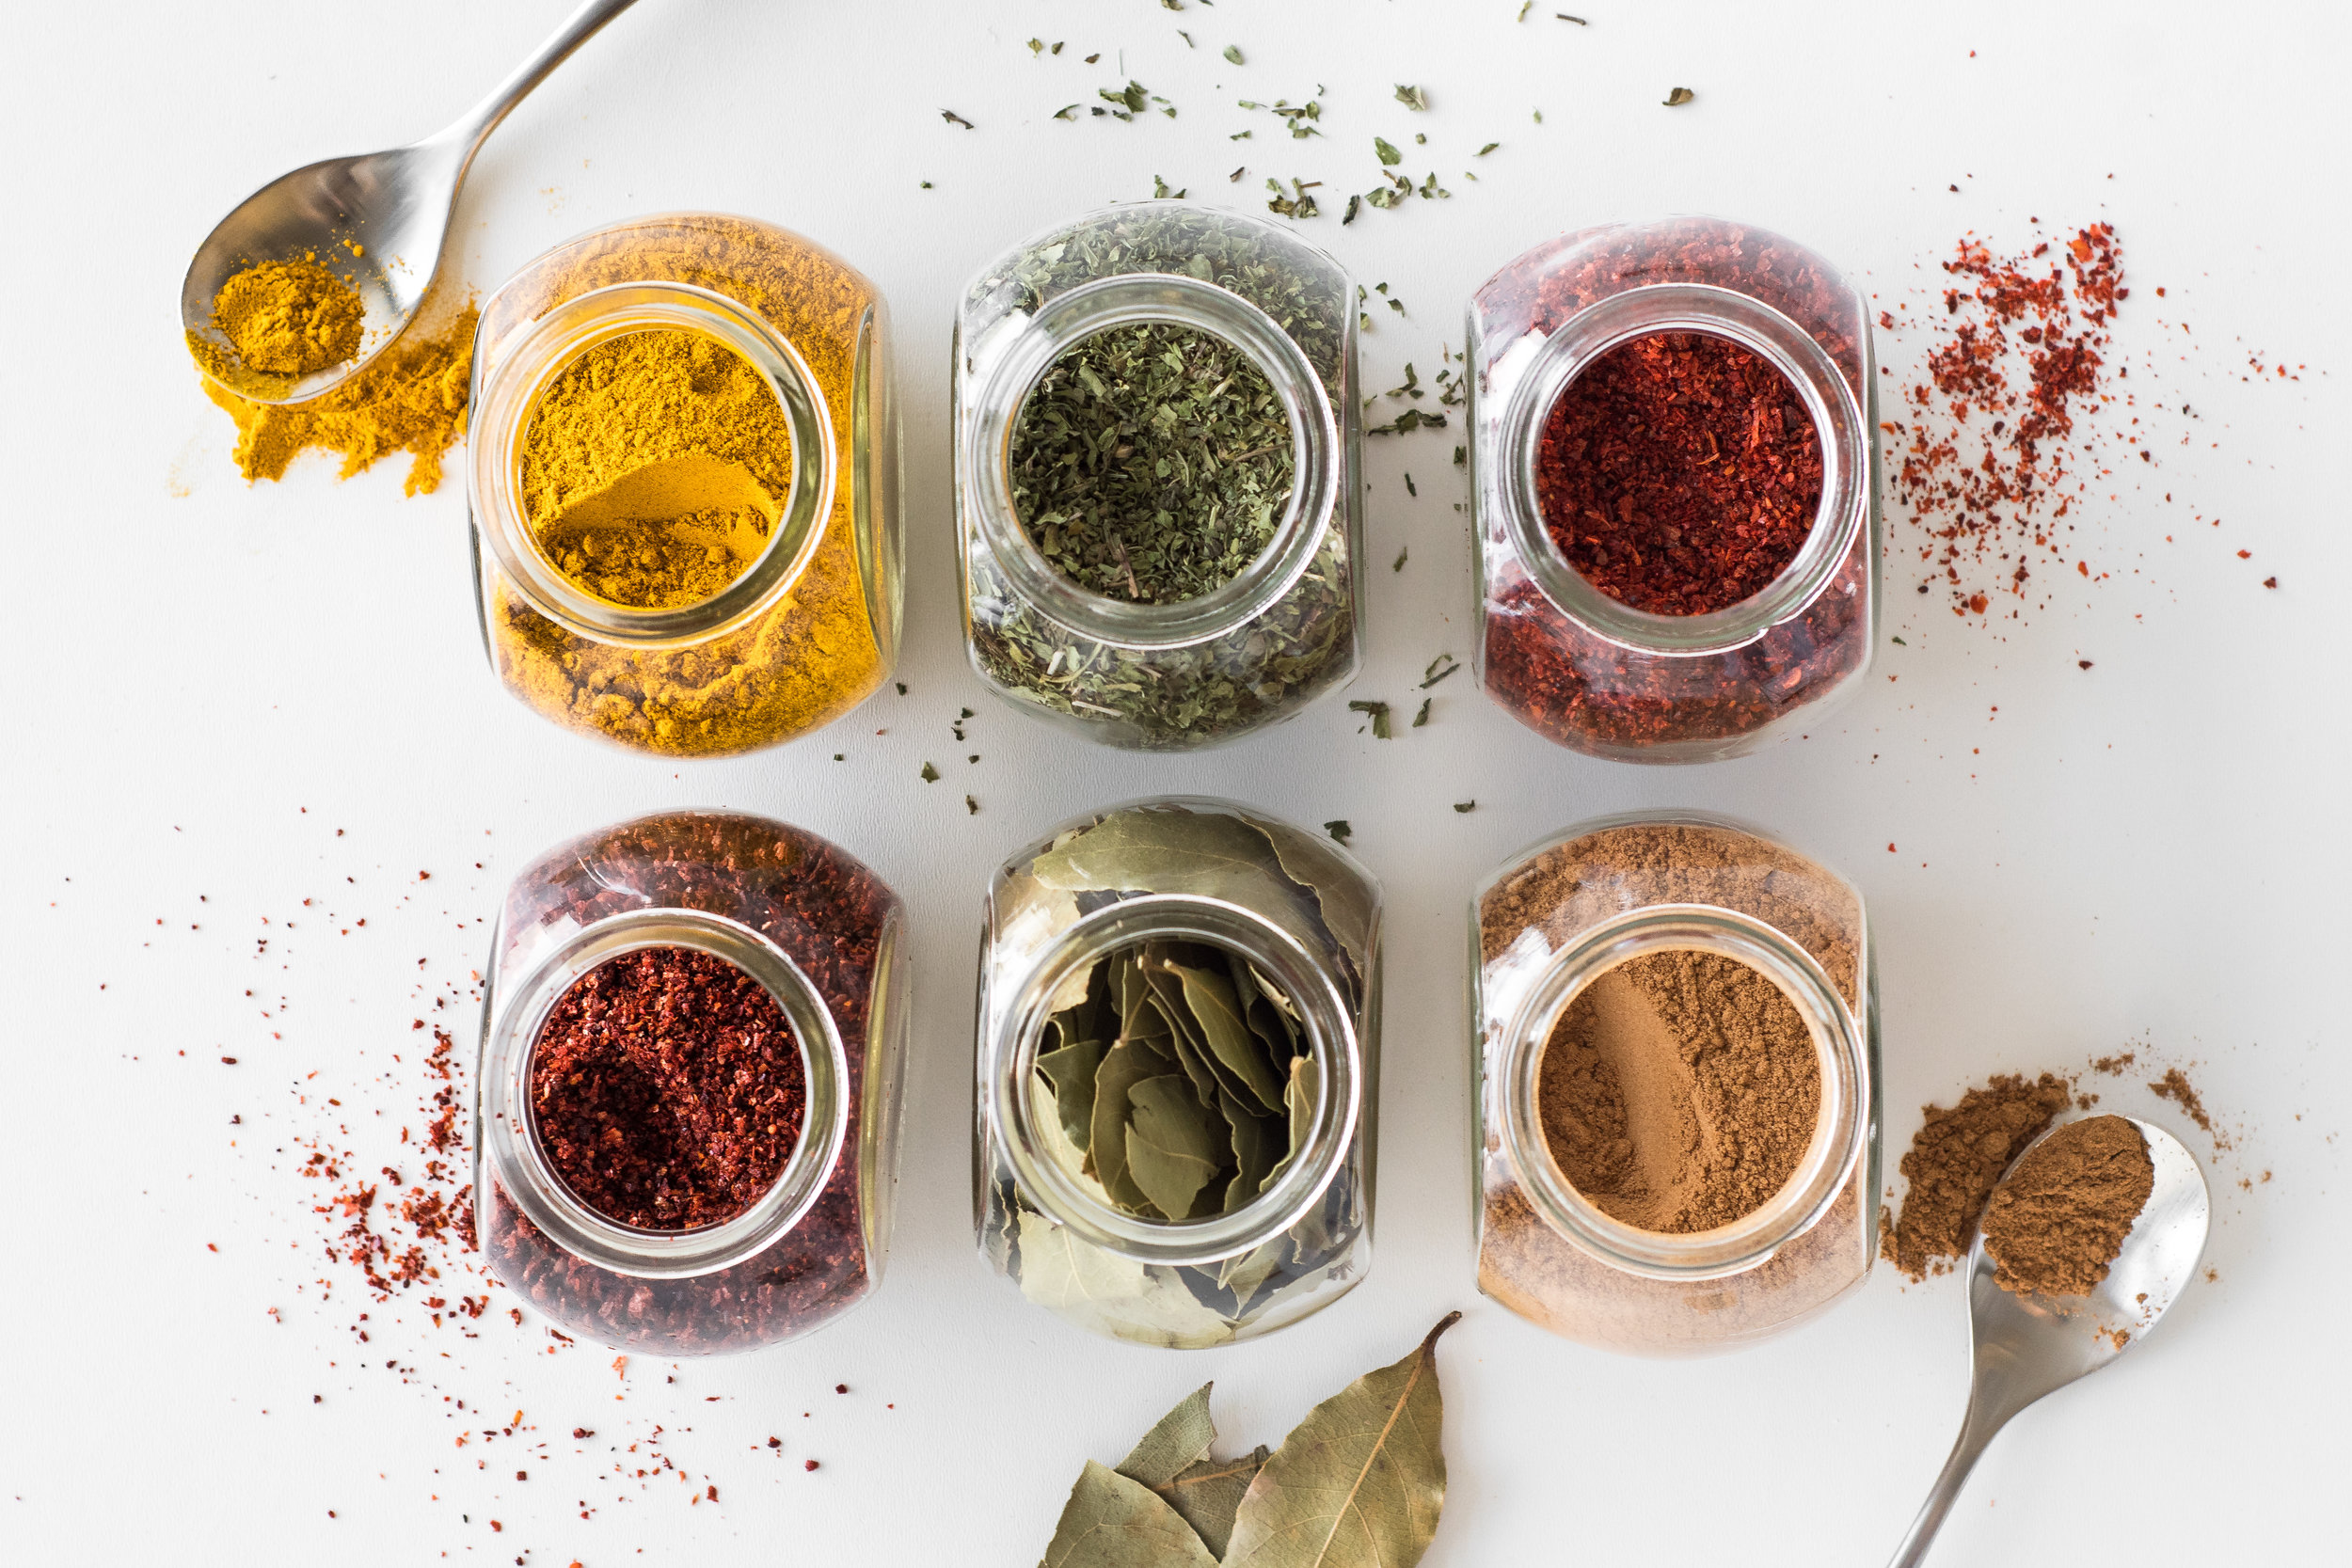 Middle Eastern spices. Clockwise from top left: tumeric, dried mint, hot ground pepper, cinnamon, bay leaves, sweet ground pepper